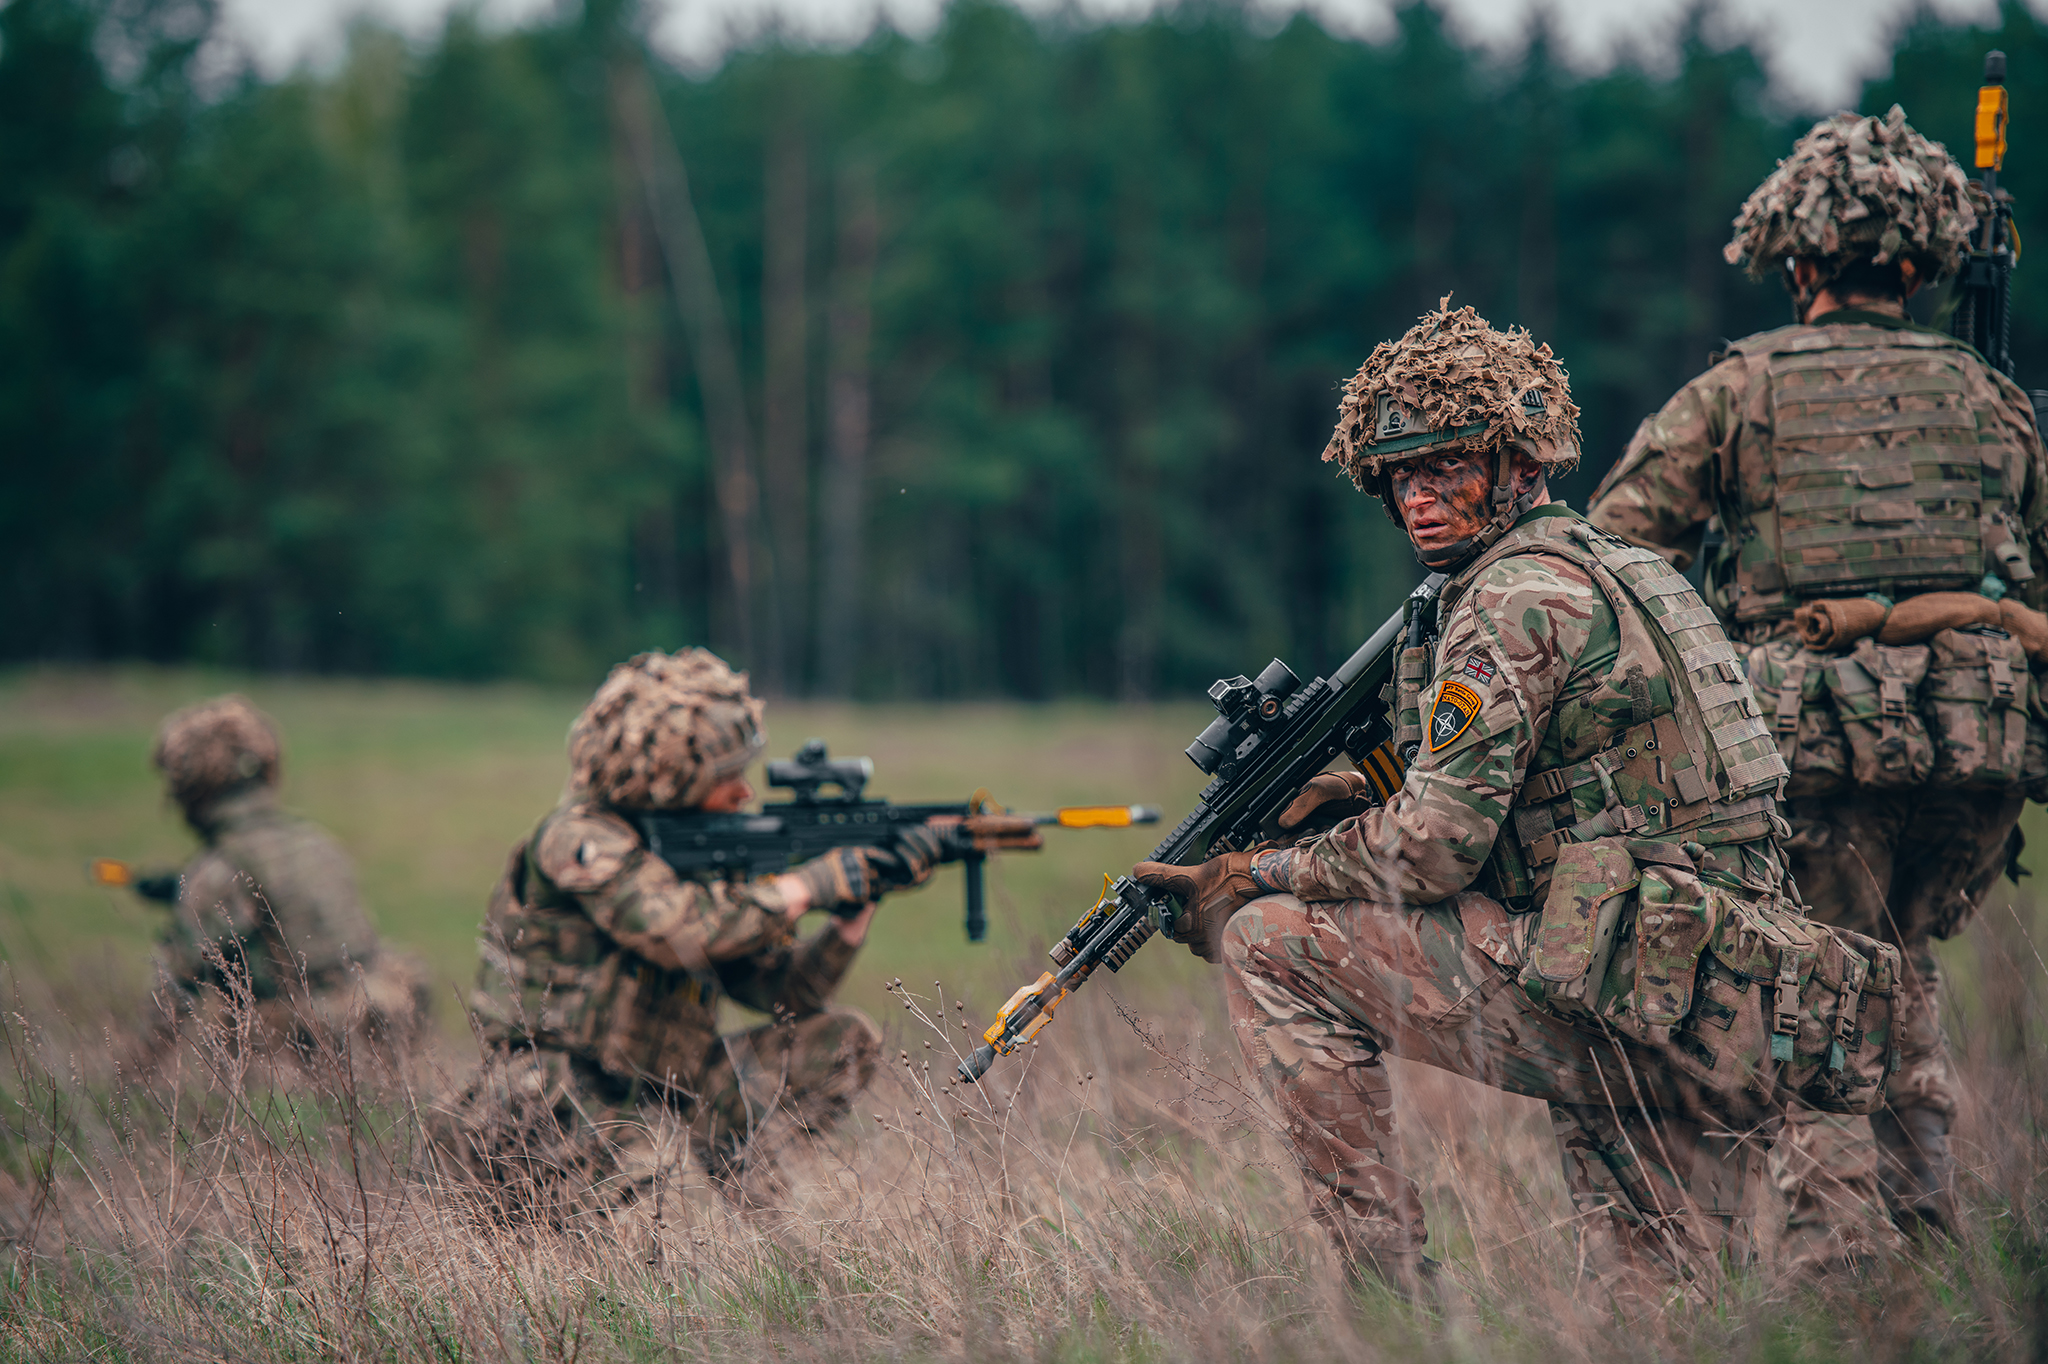 British Army's • Enhanced Recce Exercise • NATO Battle Group • Poland 2020